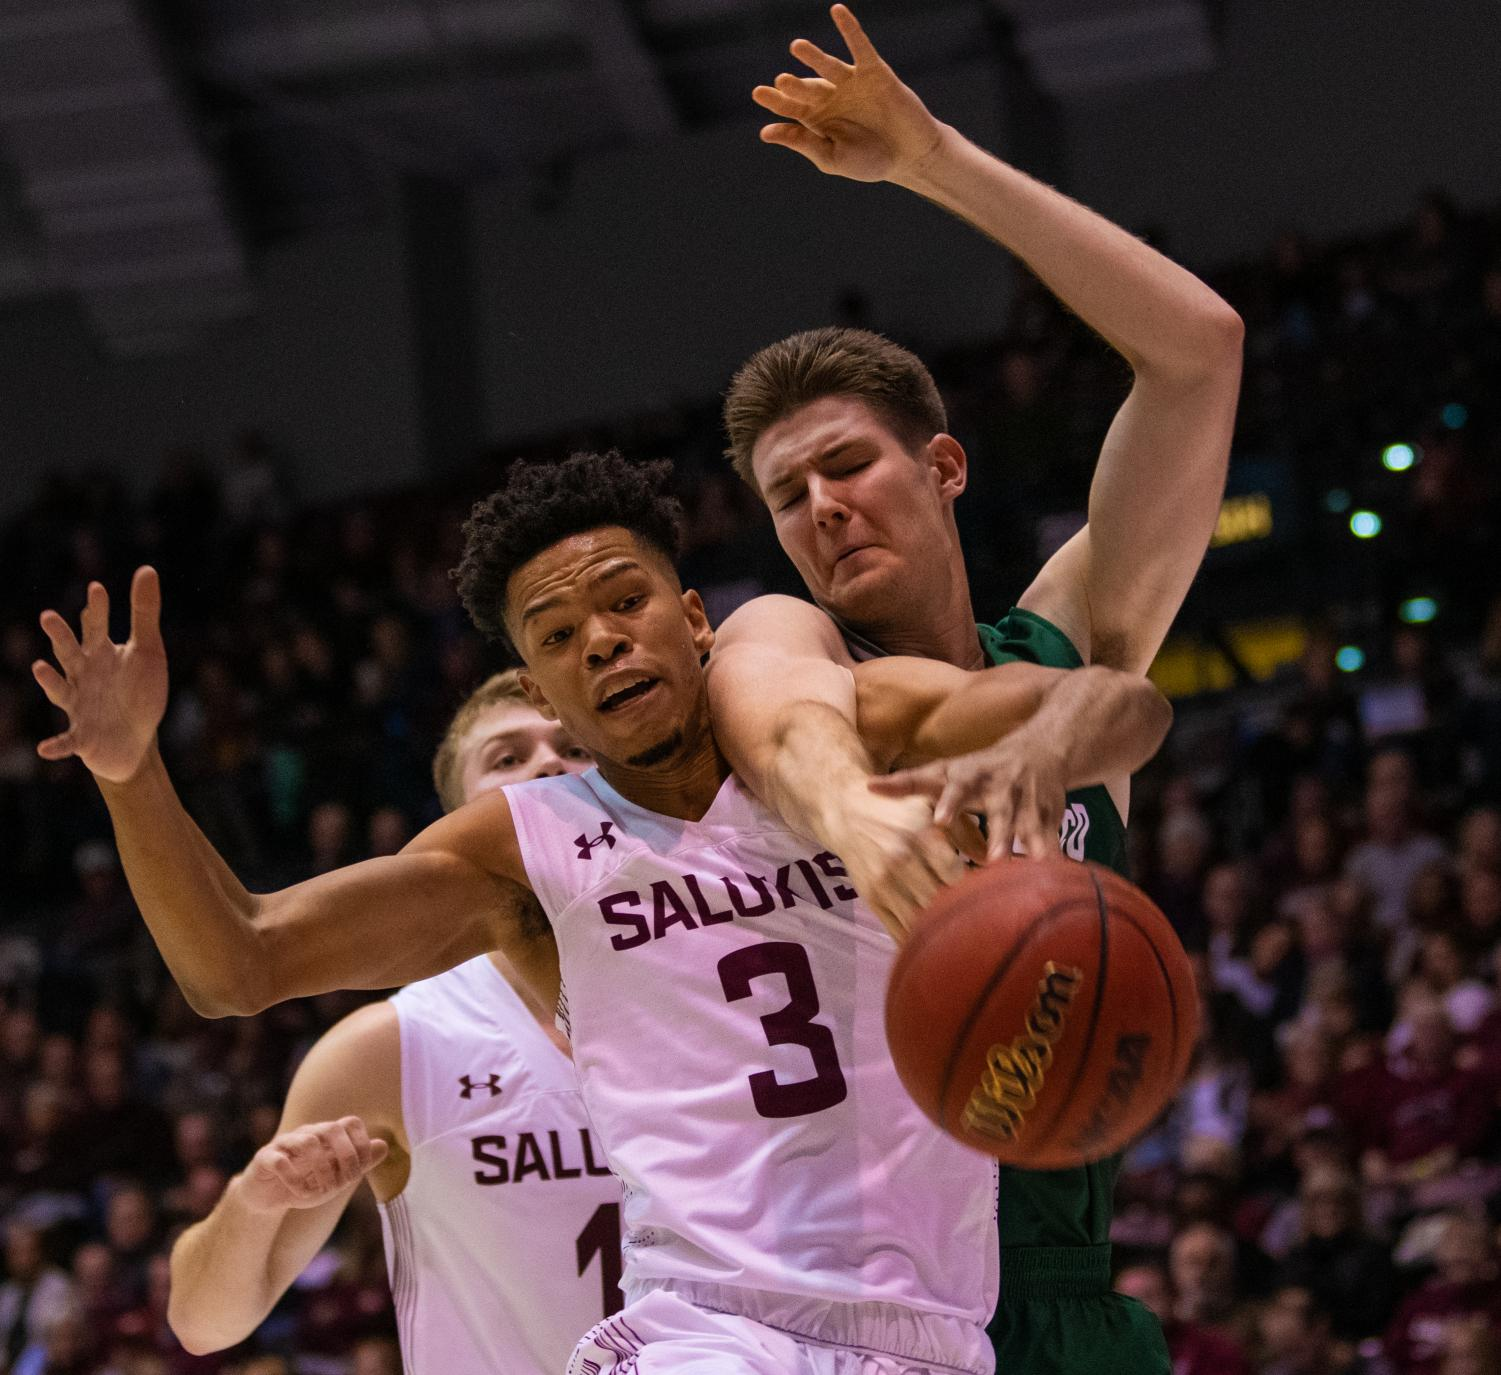 Saluki guard Ronnie Suggs Jr. blocks the rebound on Saturday, Nov. 16, 2019 during the Salukis' 60-76 loss to the San Francisco Dons inside the Banterra Center.